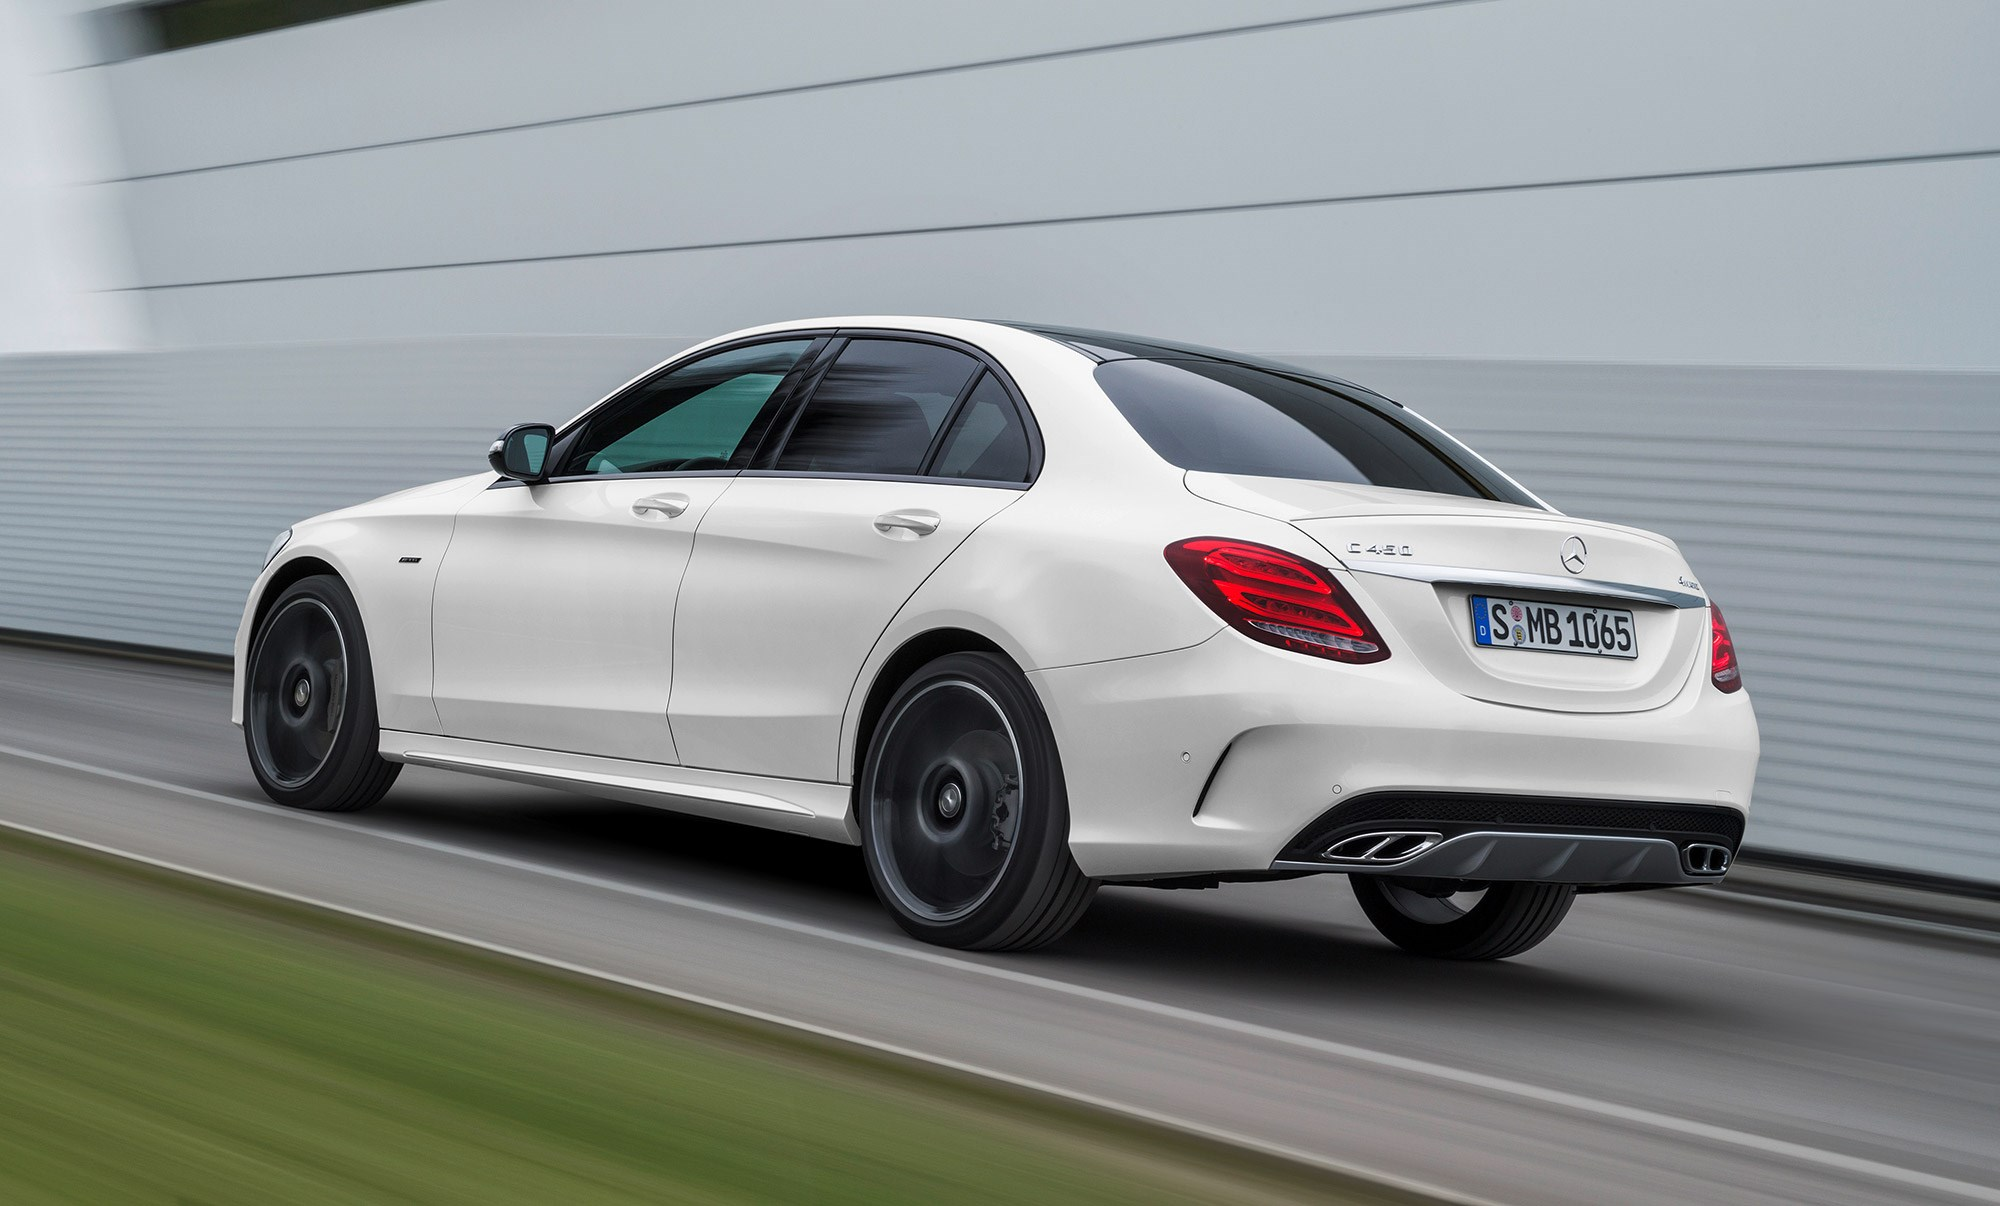 Mercedes c450 amg 4matic 2015 review by car magazine for Mercedes benz glk amg